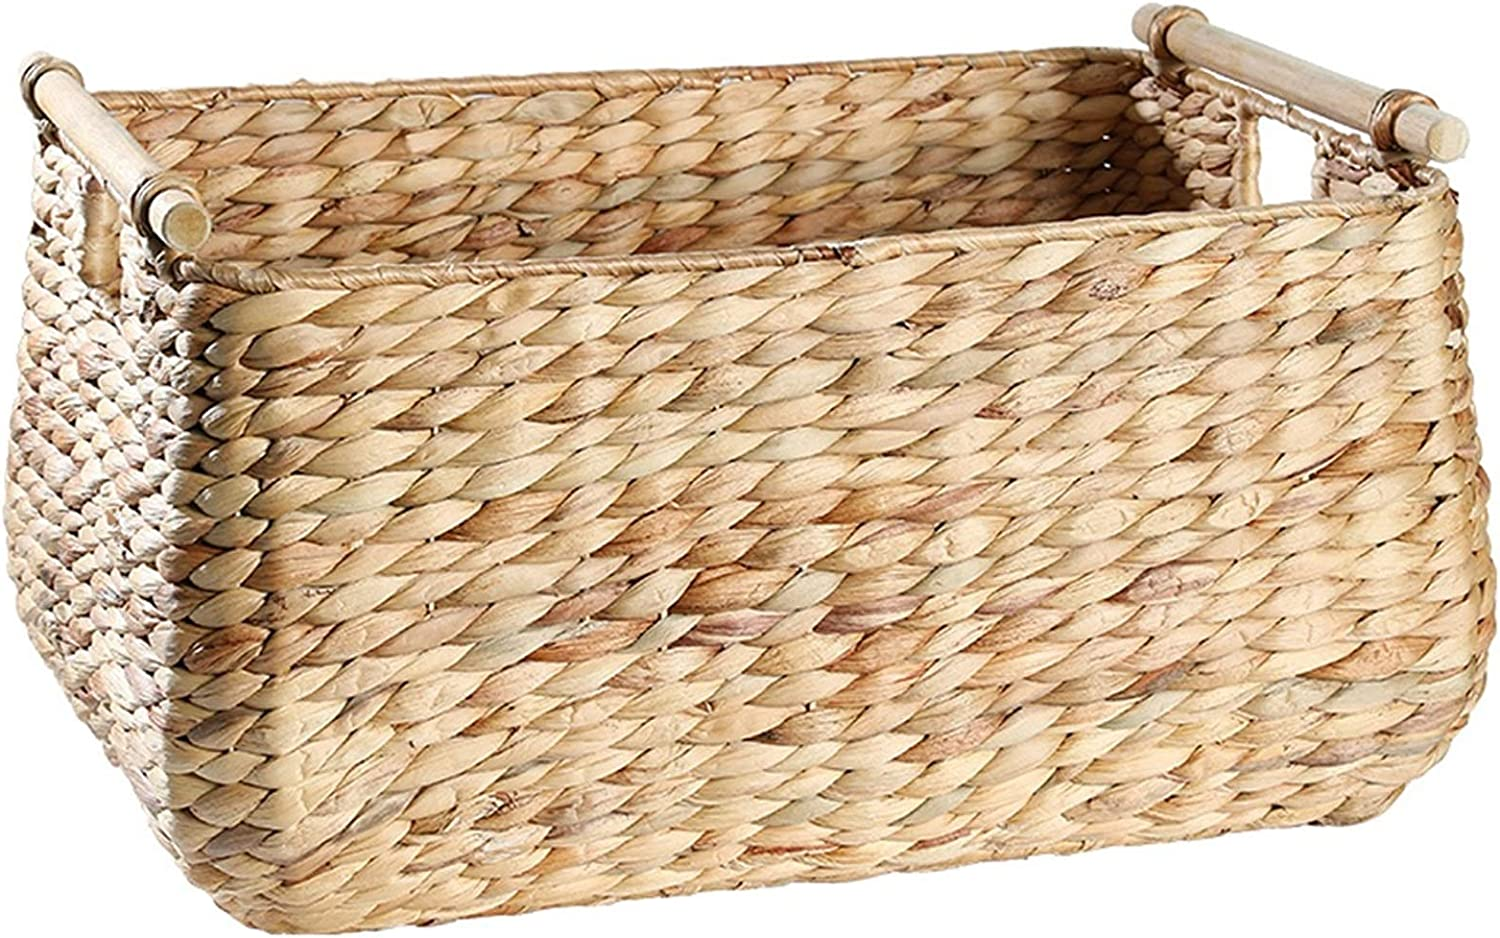 Super-cheap lxm Hand-Woven Max 83% OFF Square Large-Capacity Clothes Dirty Multi Basket